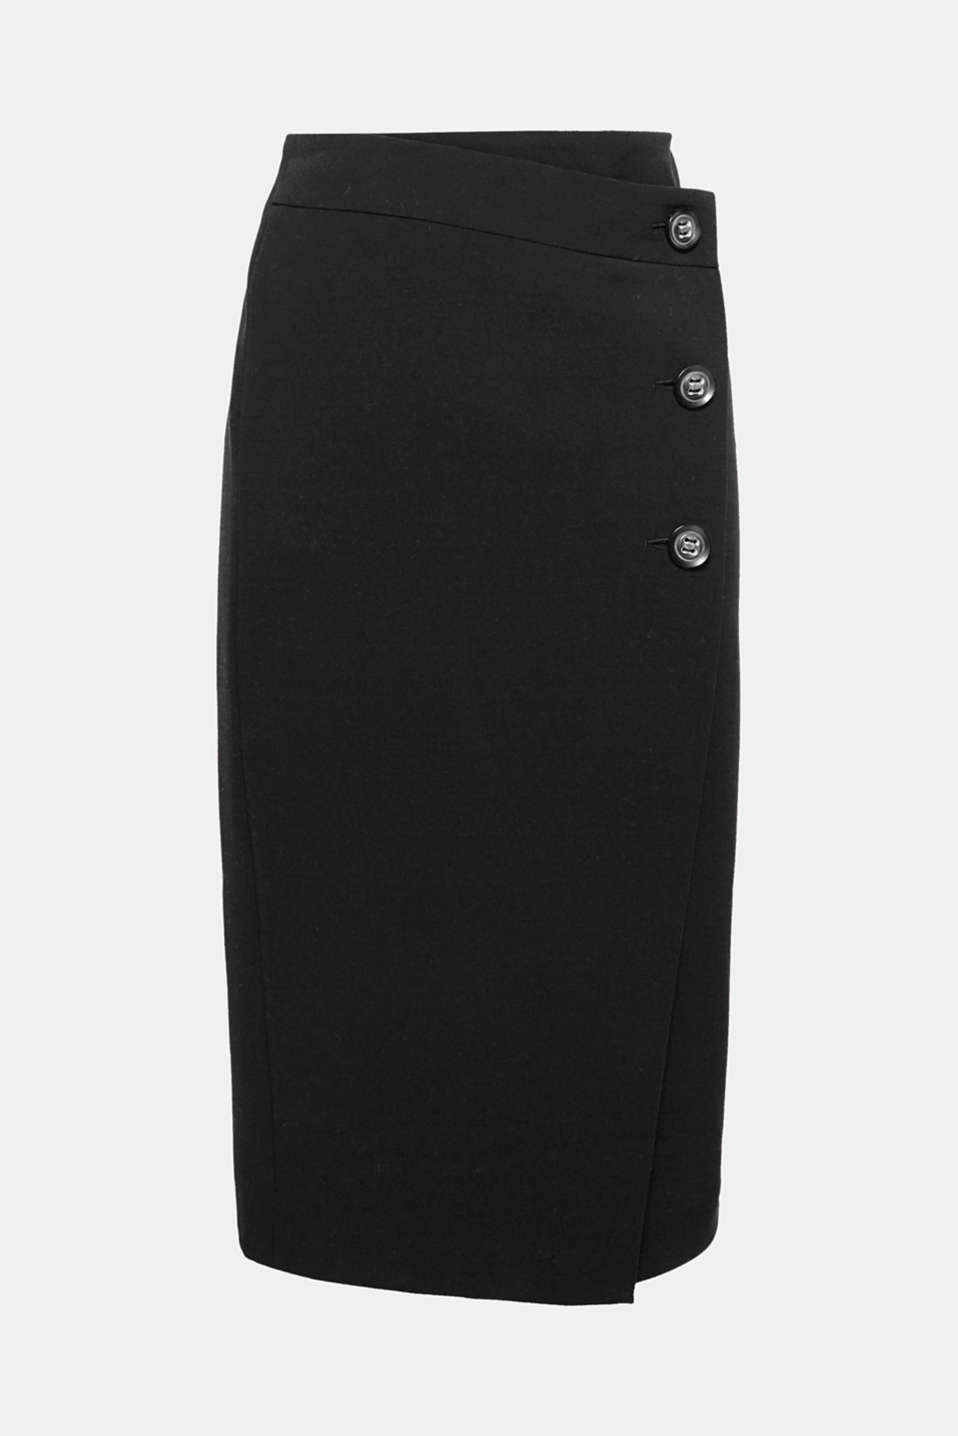 The fashionable midi length and wrap-over effect with a button placket give this skirt is particular charm.